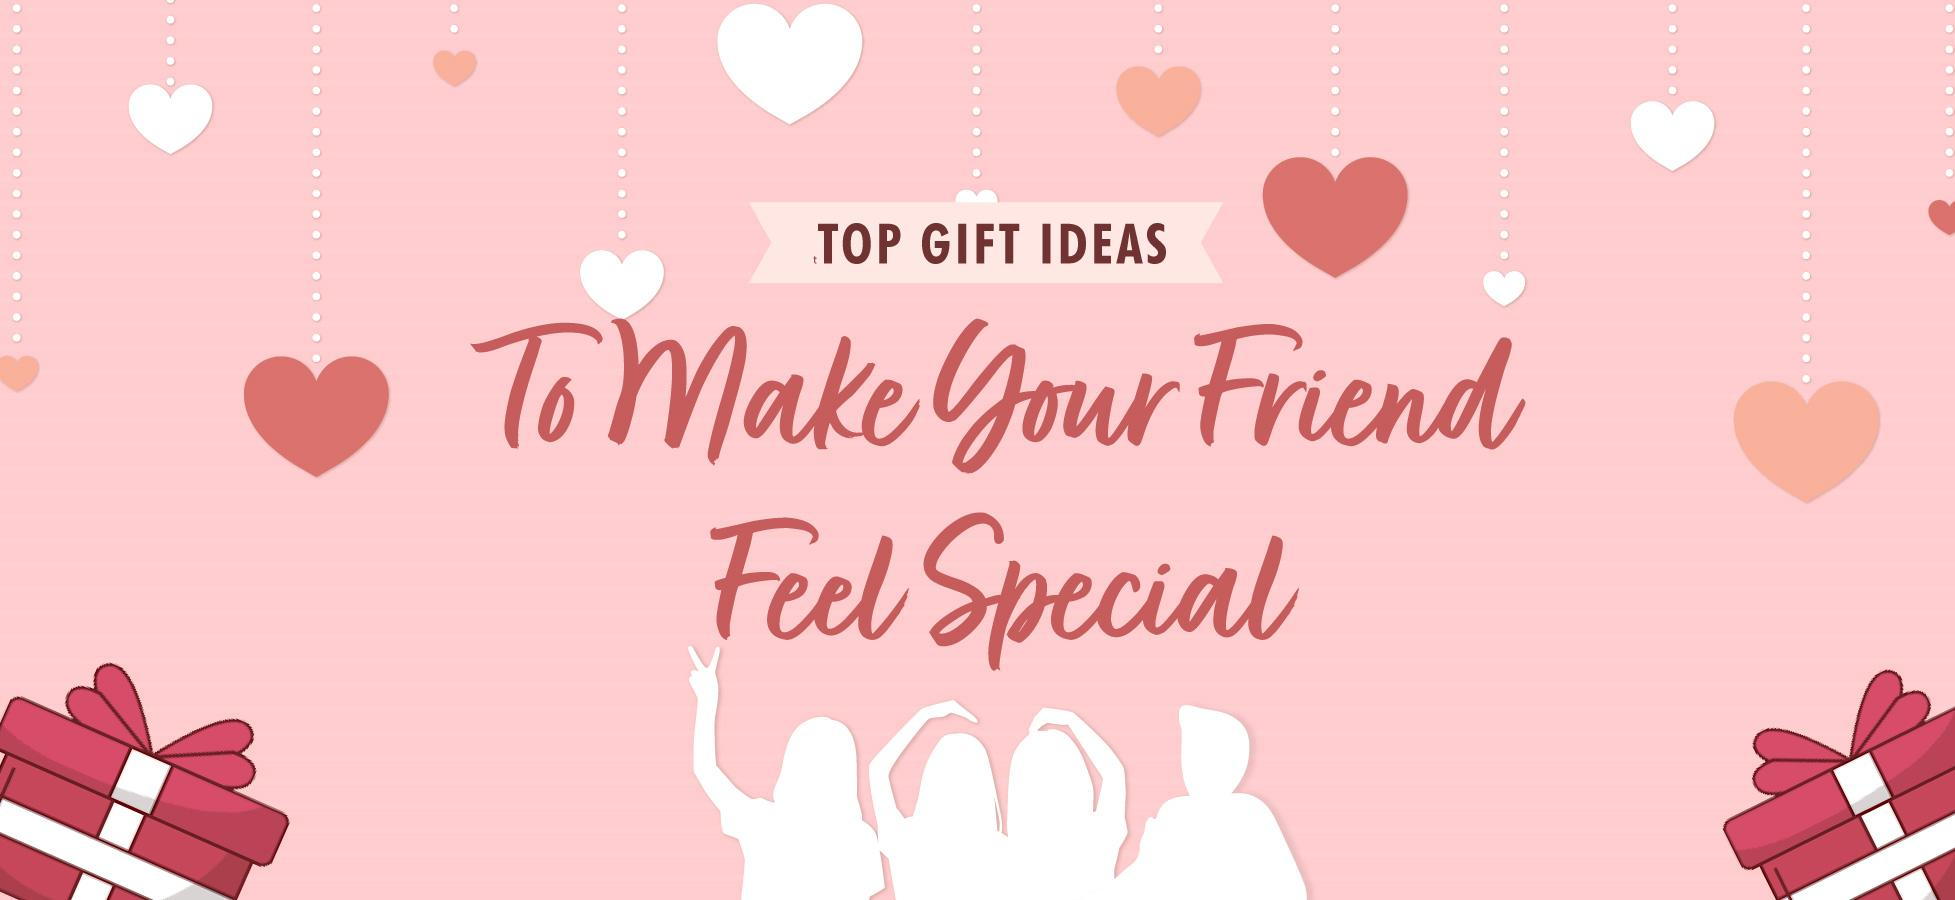 Guide to Gifting Every Friend Something They'll Love